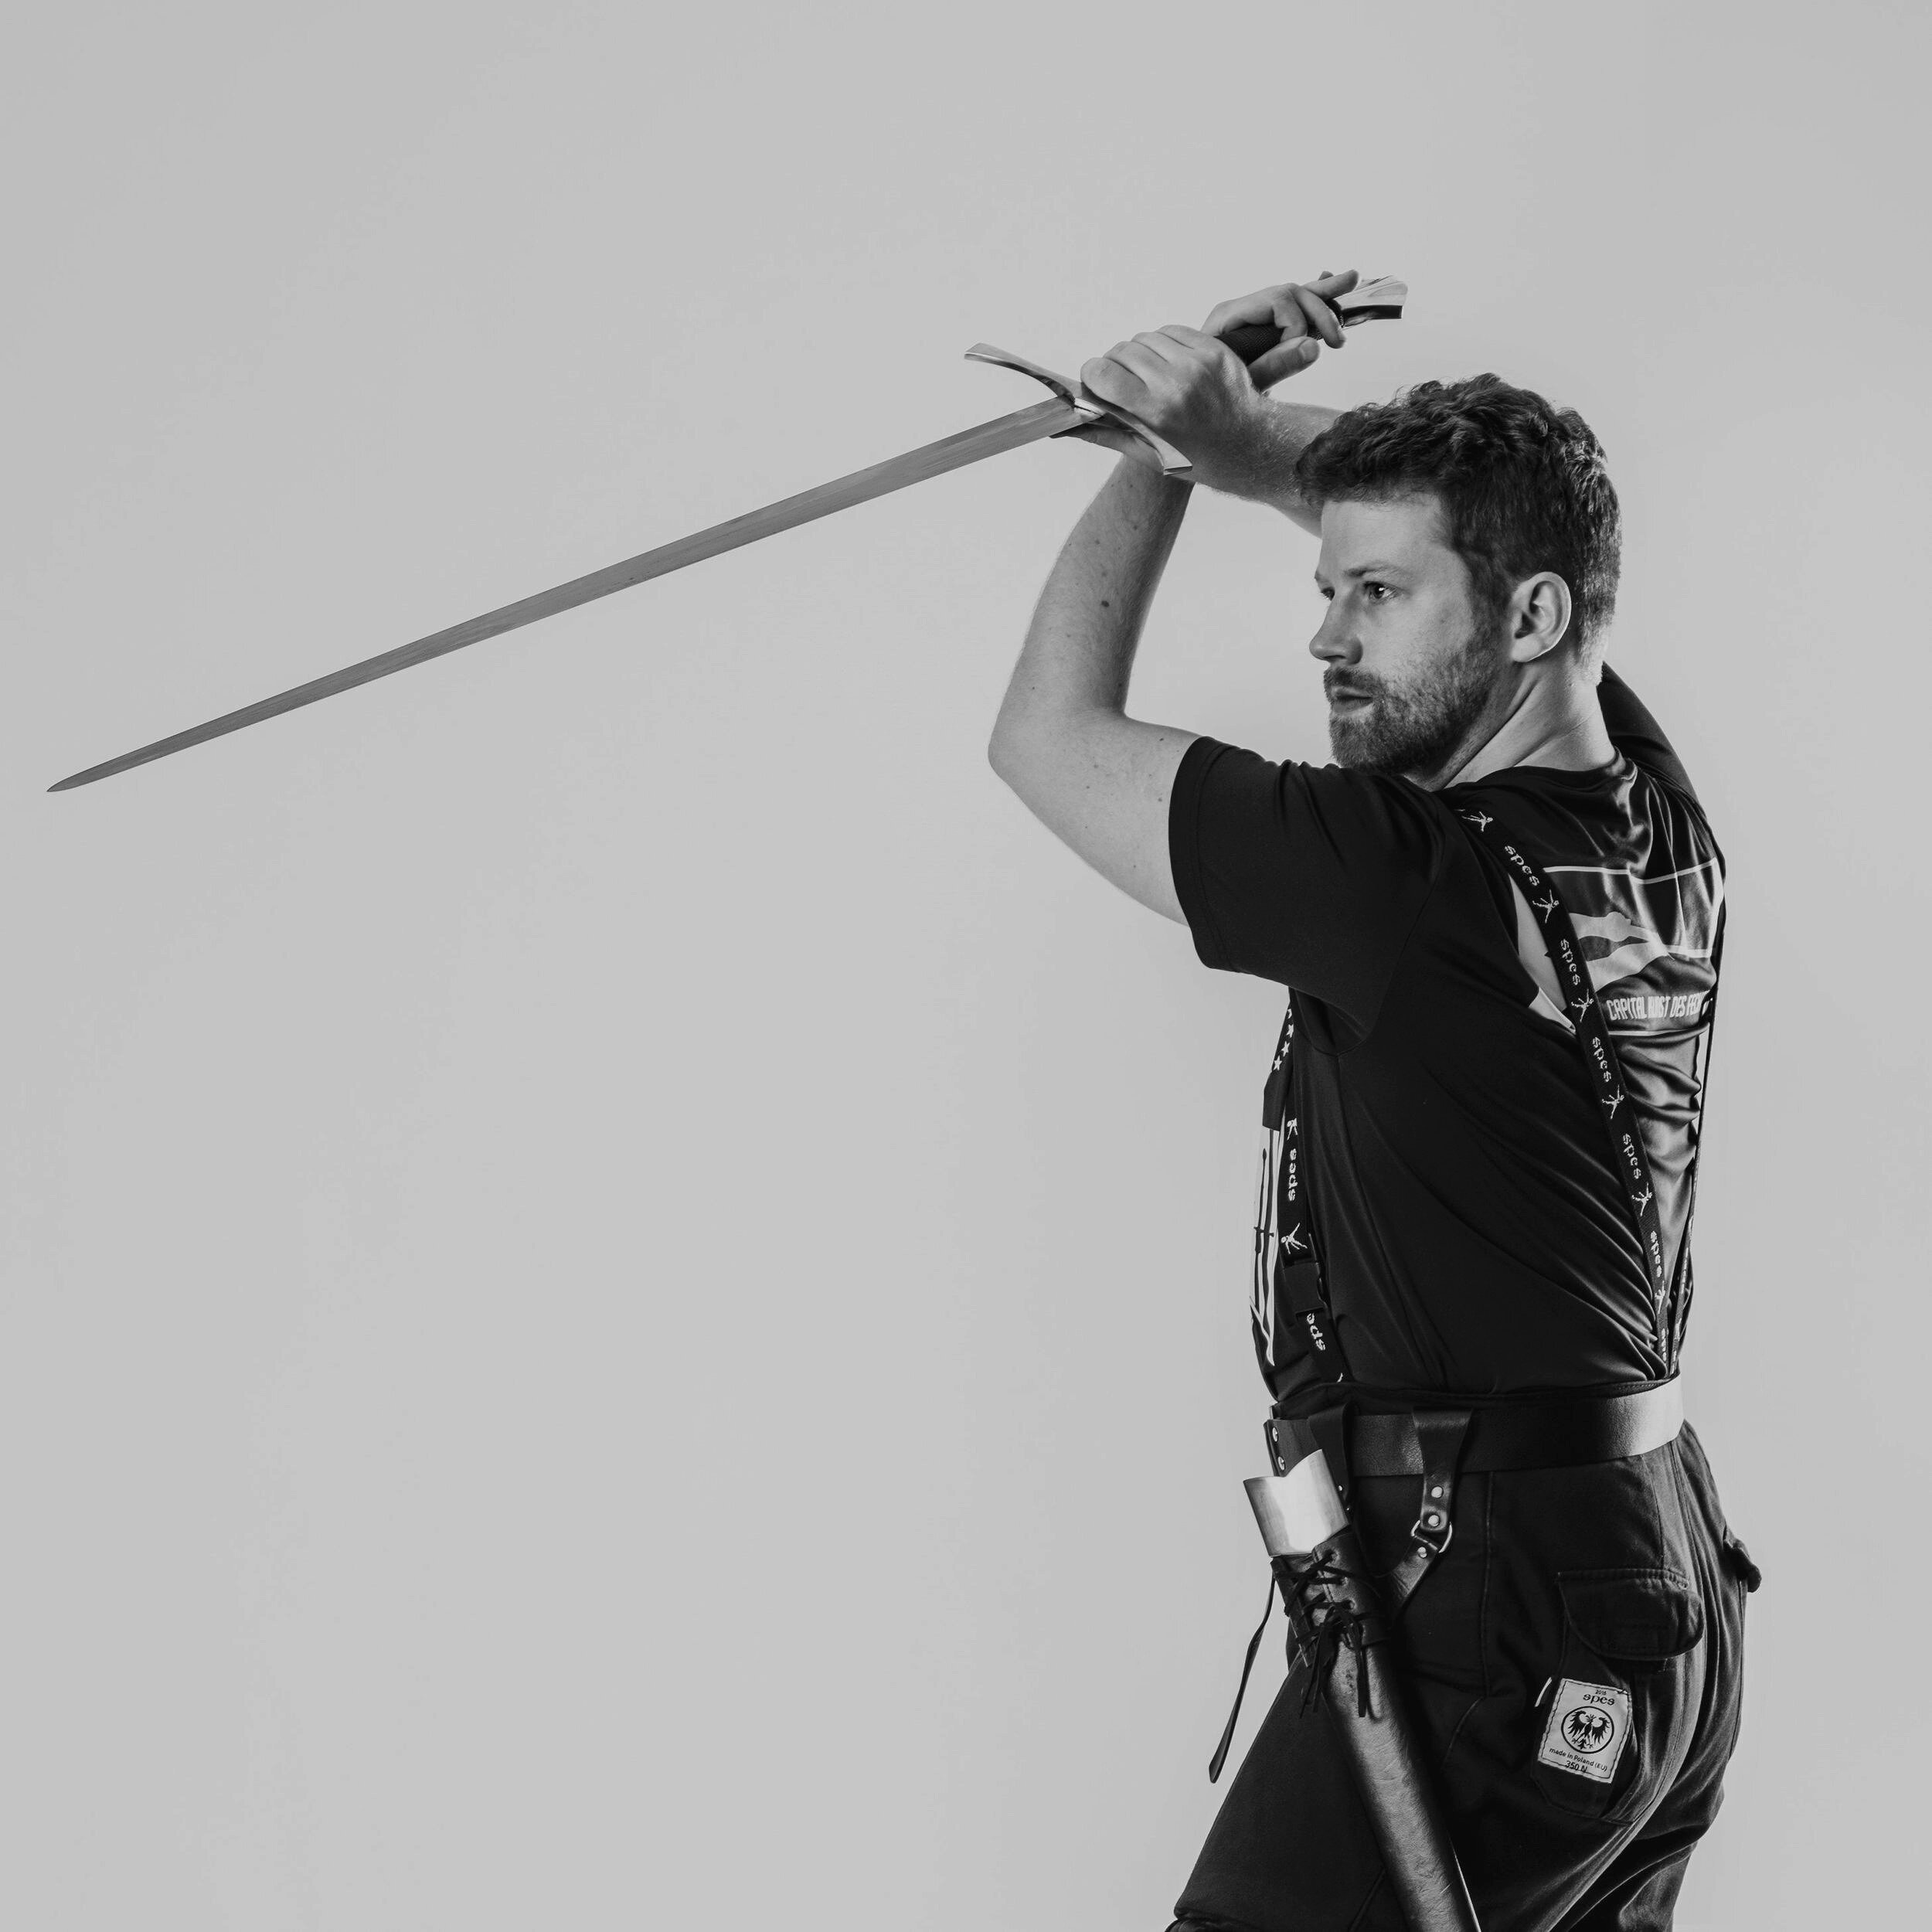 Thomas Schratwieser  instructs both common fencing and Kunst des Fechtens longsword, for which he has earned medals in test cutting and paired technique. He is a scientific consultant for the DoD in Arlington, VA.